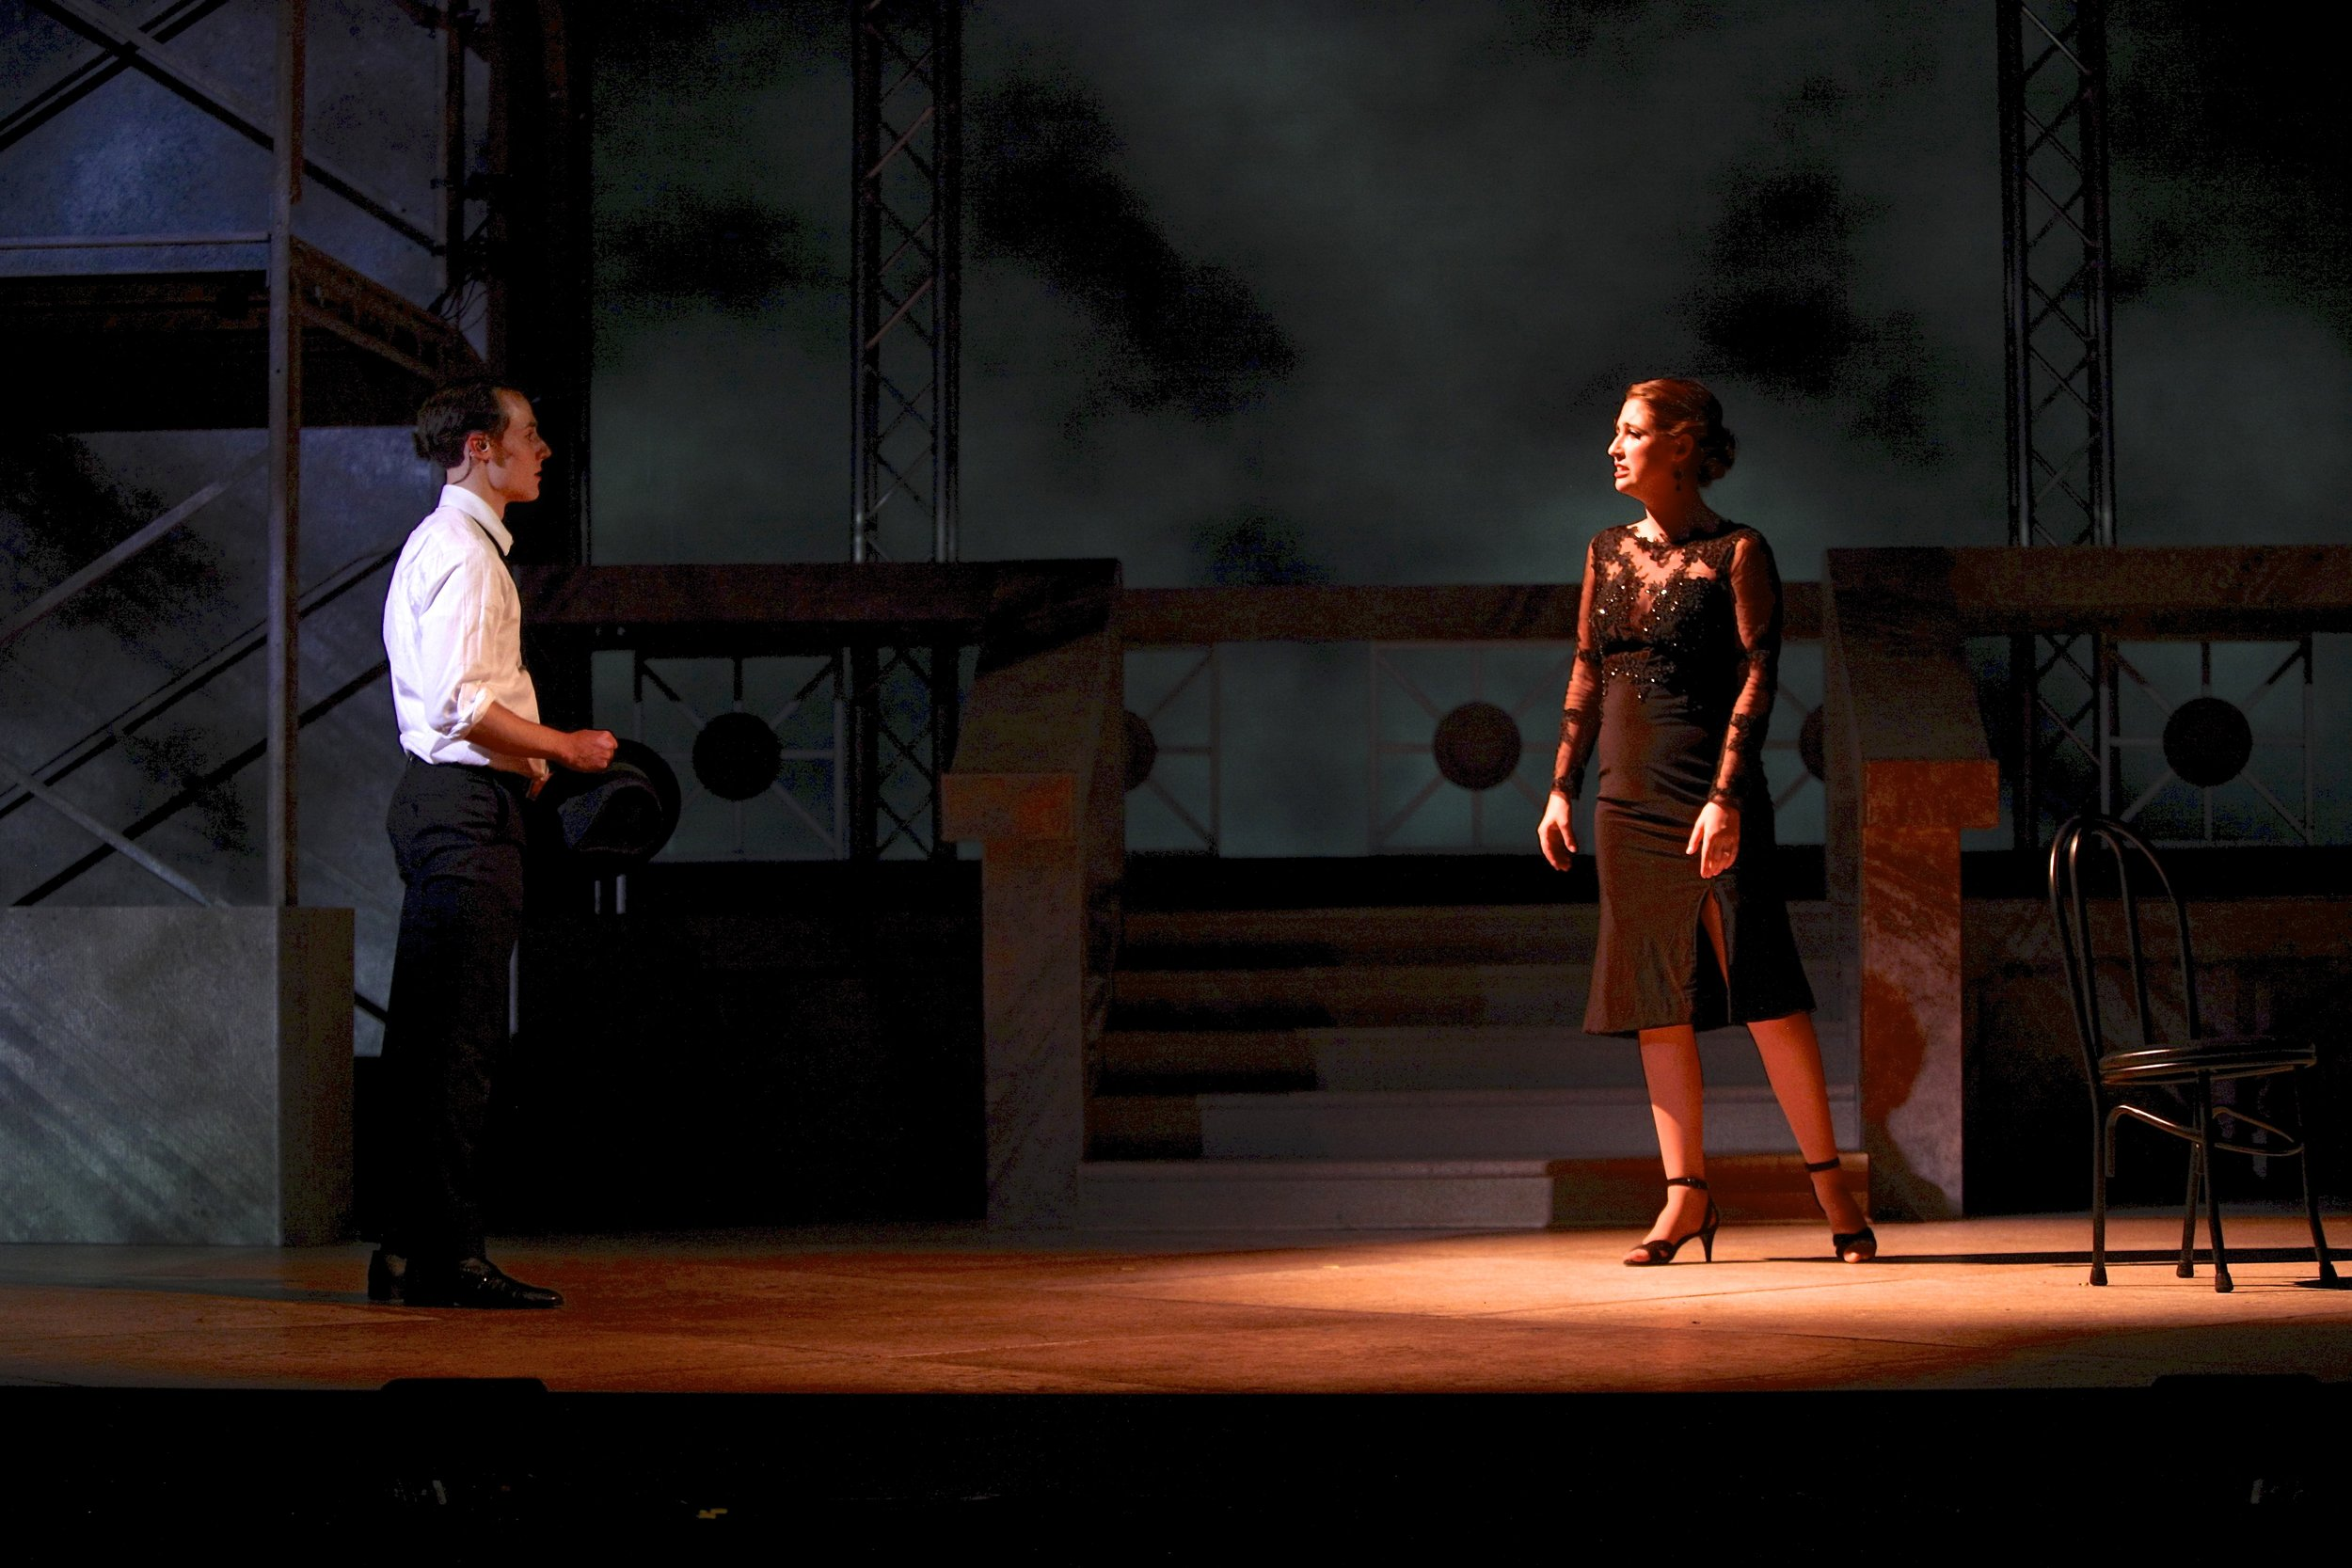 Ezekiel Edmonds (Guido) and Emma Roos (Luisa) in NINE. Photo by Michael Davis.